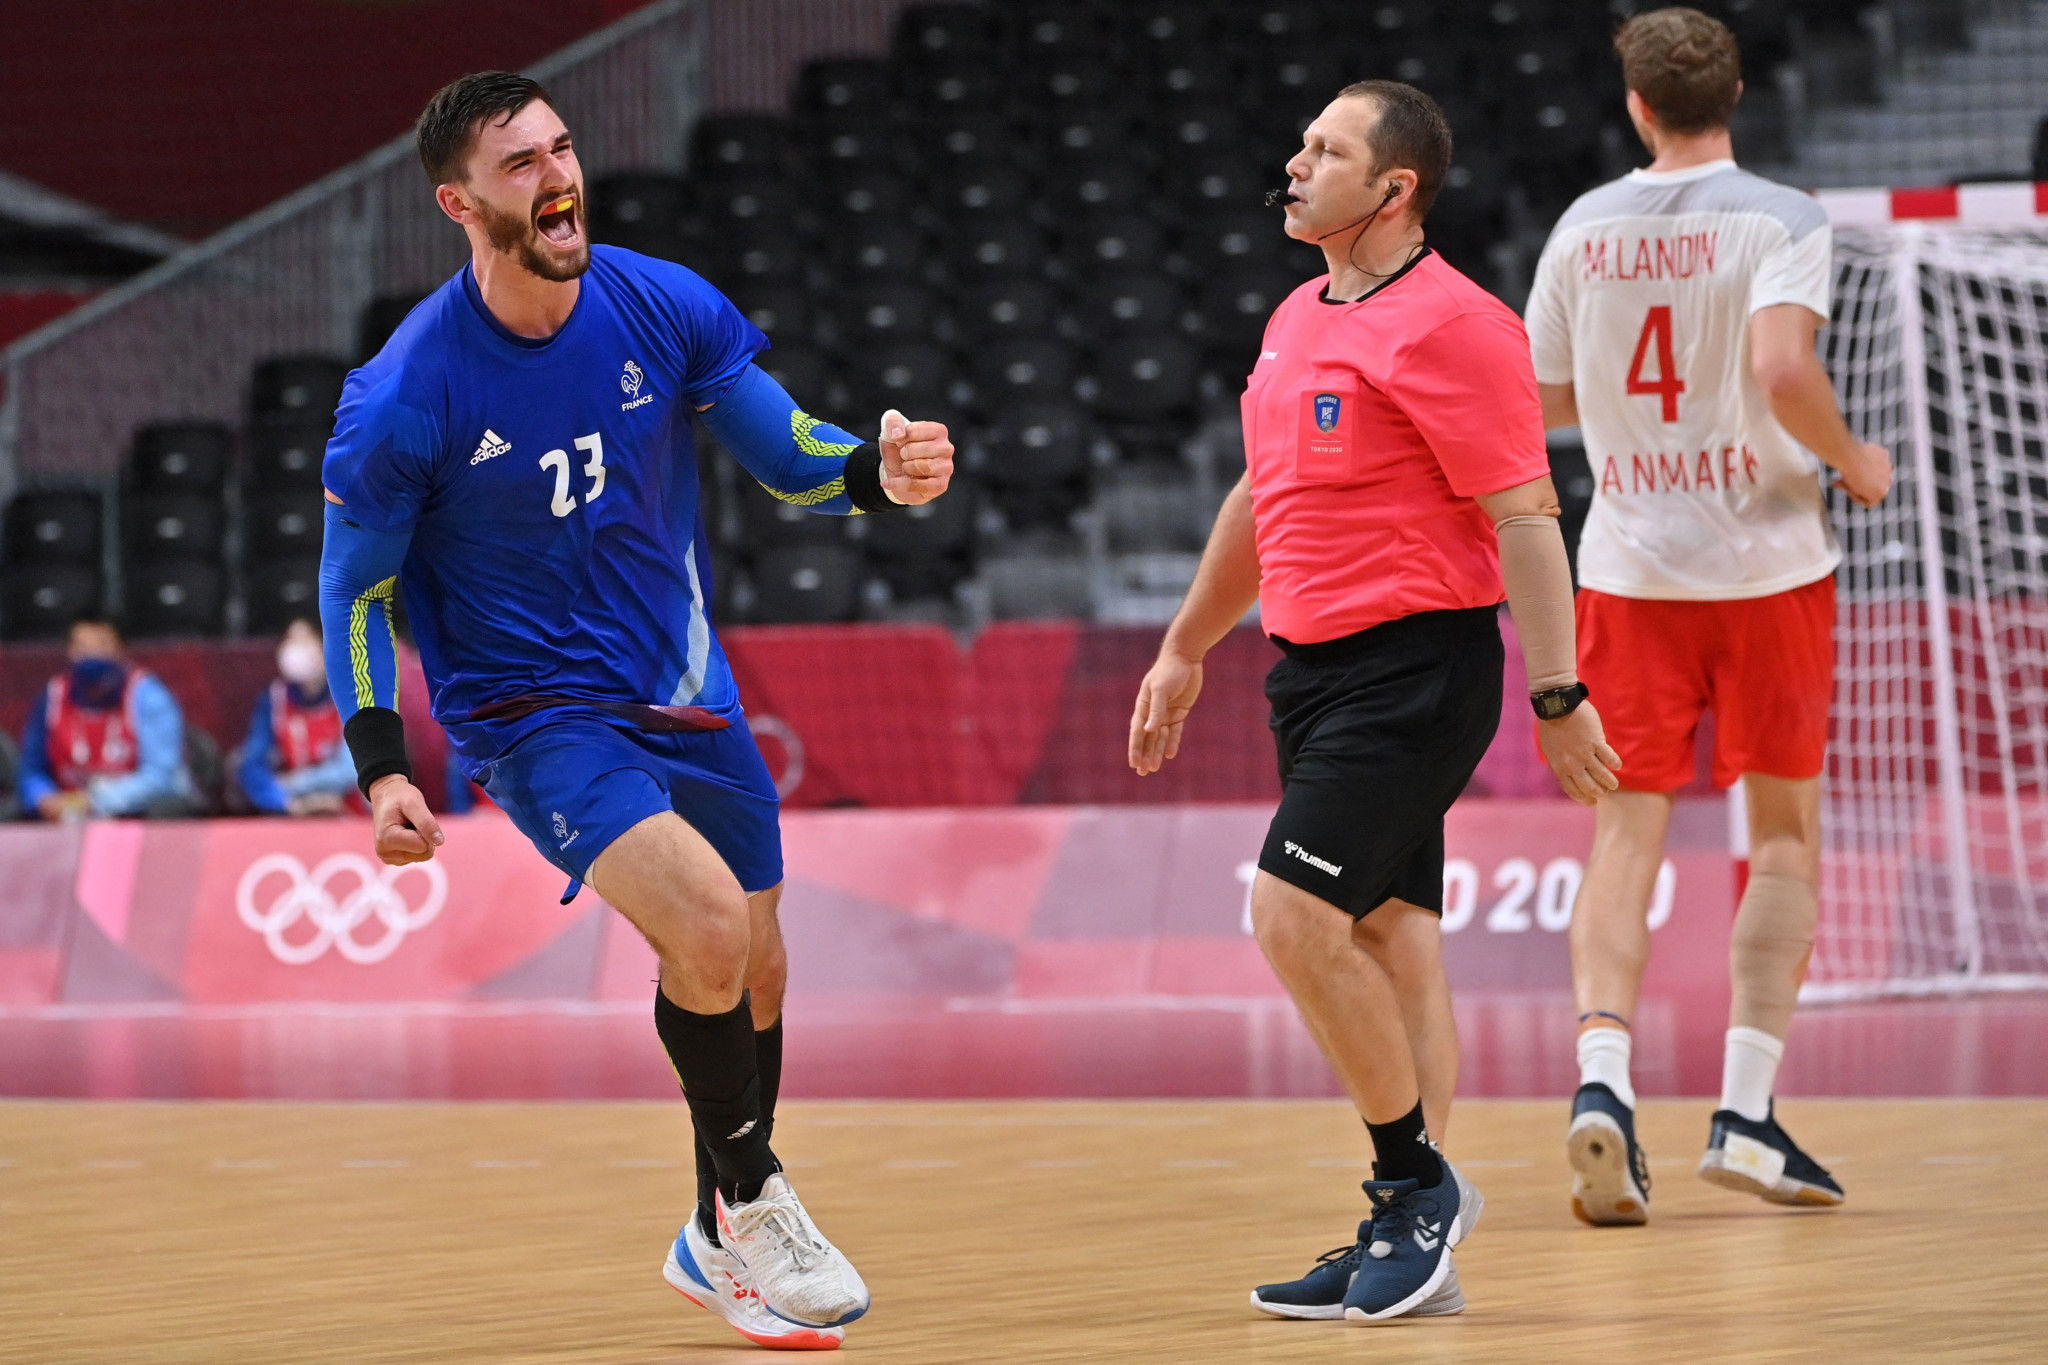 Ludovic Fabregas scored the decisive goal with six seconds left as France reclaimed men's handball gold ©Getty Images